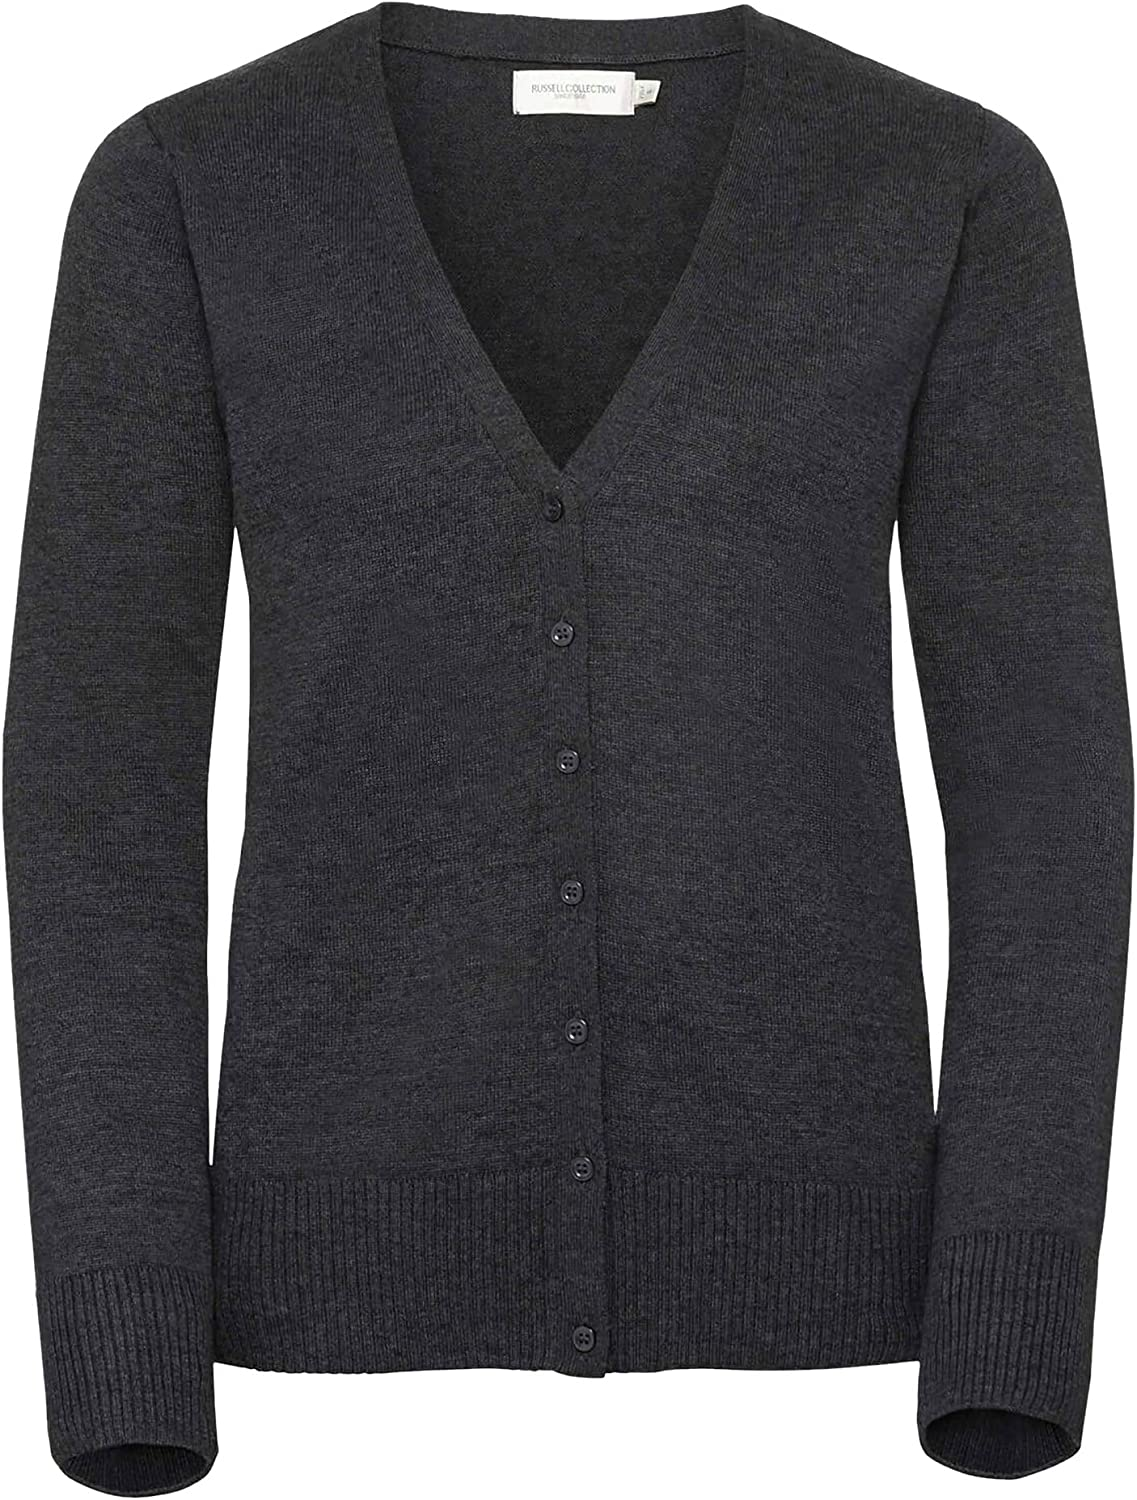 Russell Collection LadiesWomens V Neck Knitted Cardigan